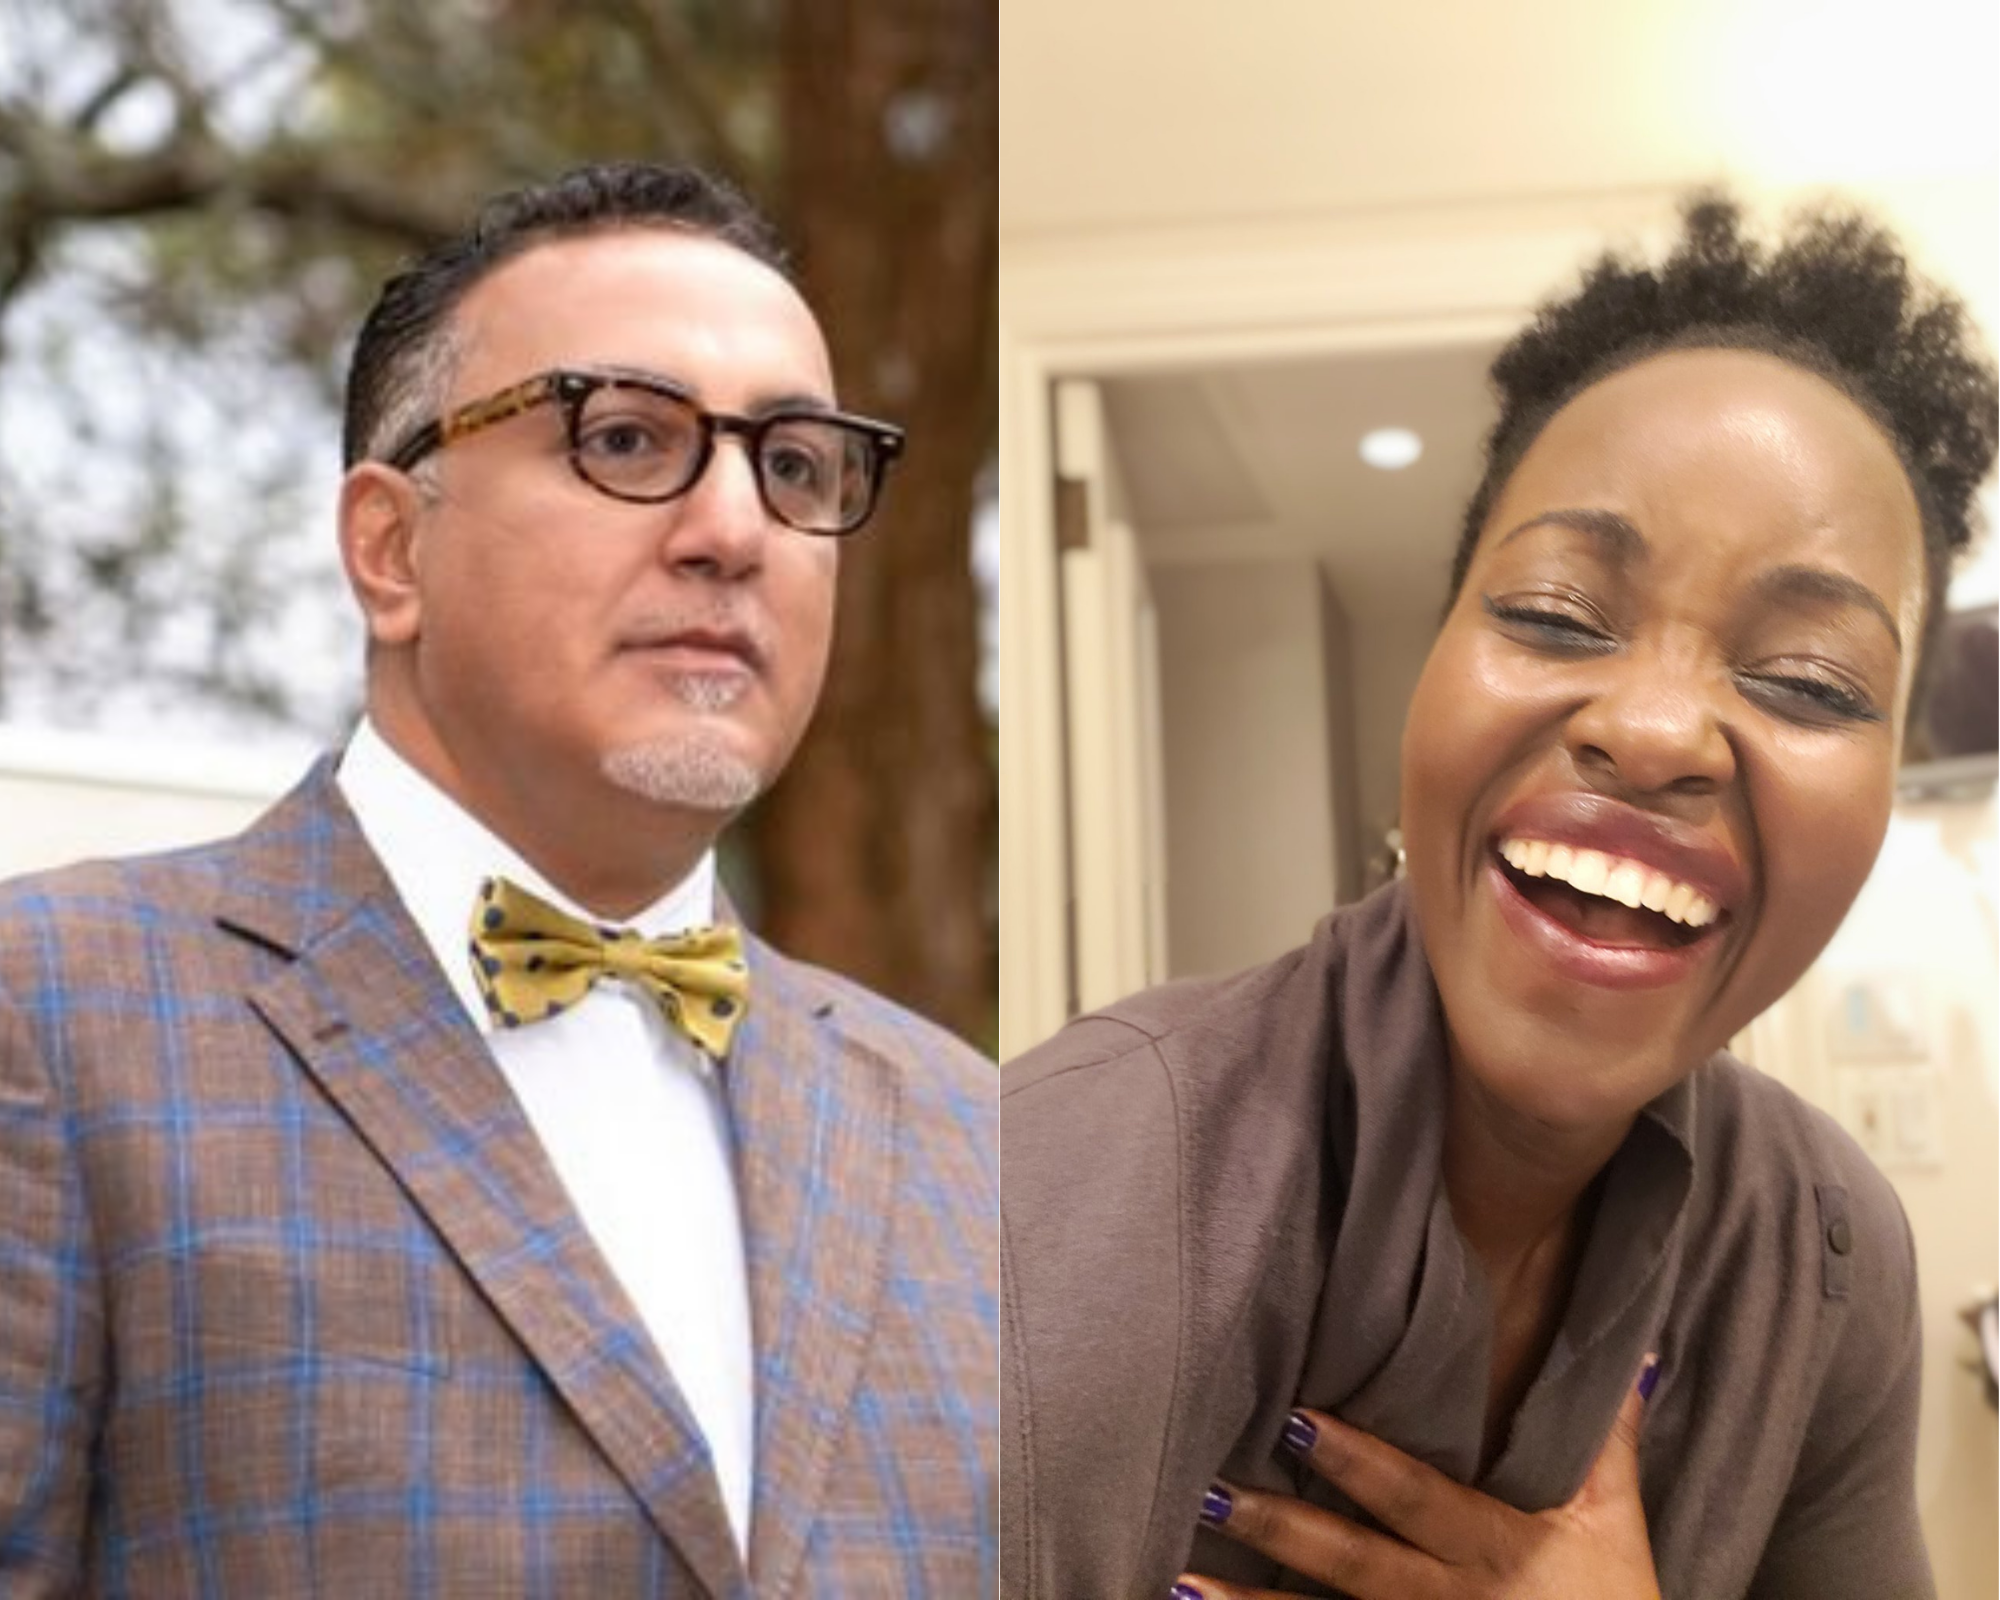 Tourism Cabinet Secretary Najib Balala (left) and actress Lupita Nyong'o. Lupita shared the image of herself laughing while responding to Balala's claims that she was inaccessible for five years as the ministry sought her out for an ambassadorial role.